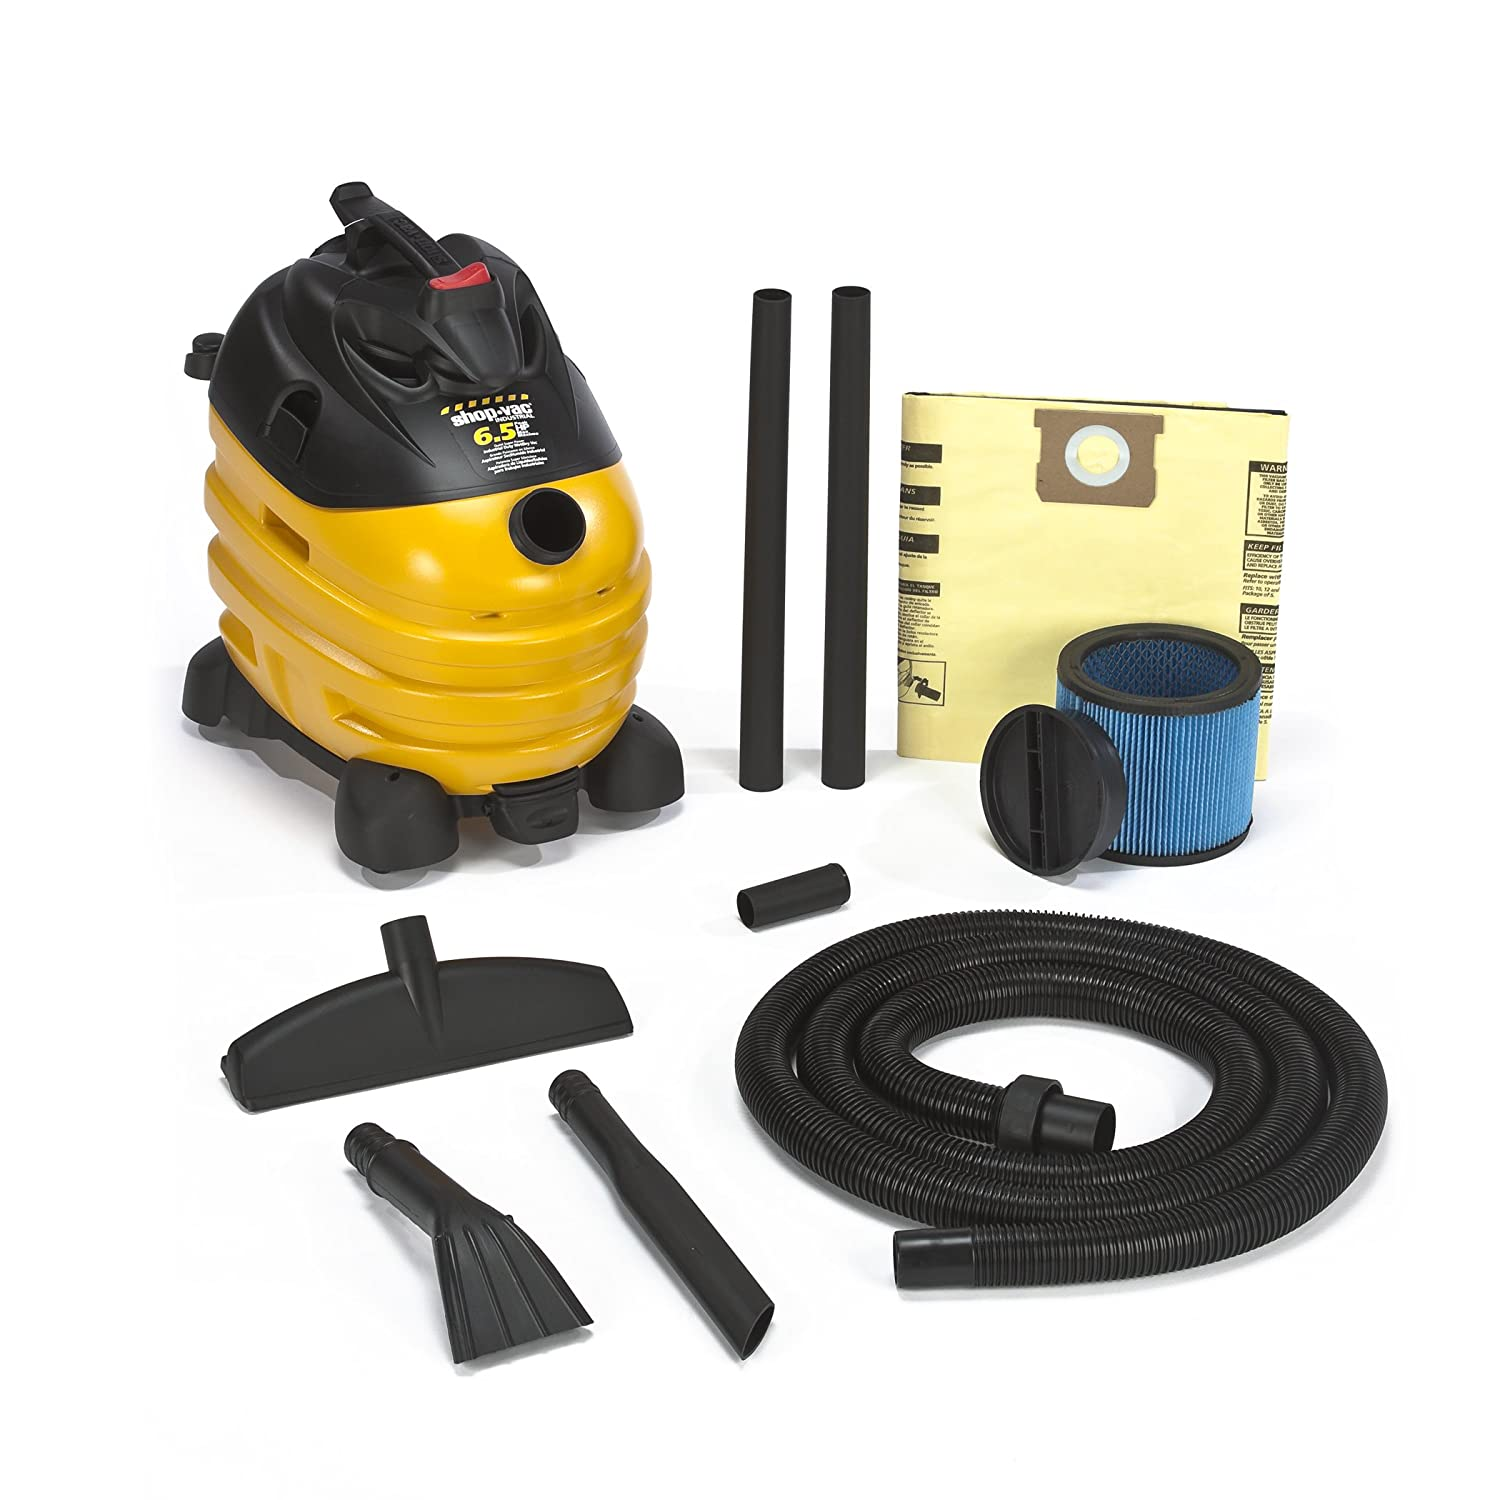 Shop-Vac 5873410 6.5-Peak Horsepower Right Stuff Wet/Dry Vacuum 10-Gallon with Tool & Cord Storage & Multifunction Accessories, Uses Type X Cartridge Filter & Type H Filter Bag